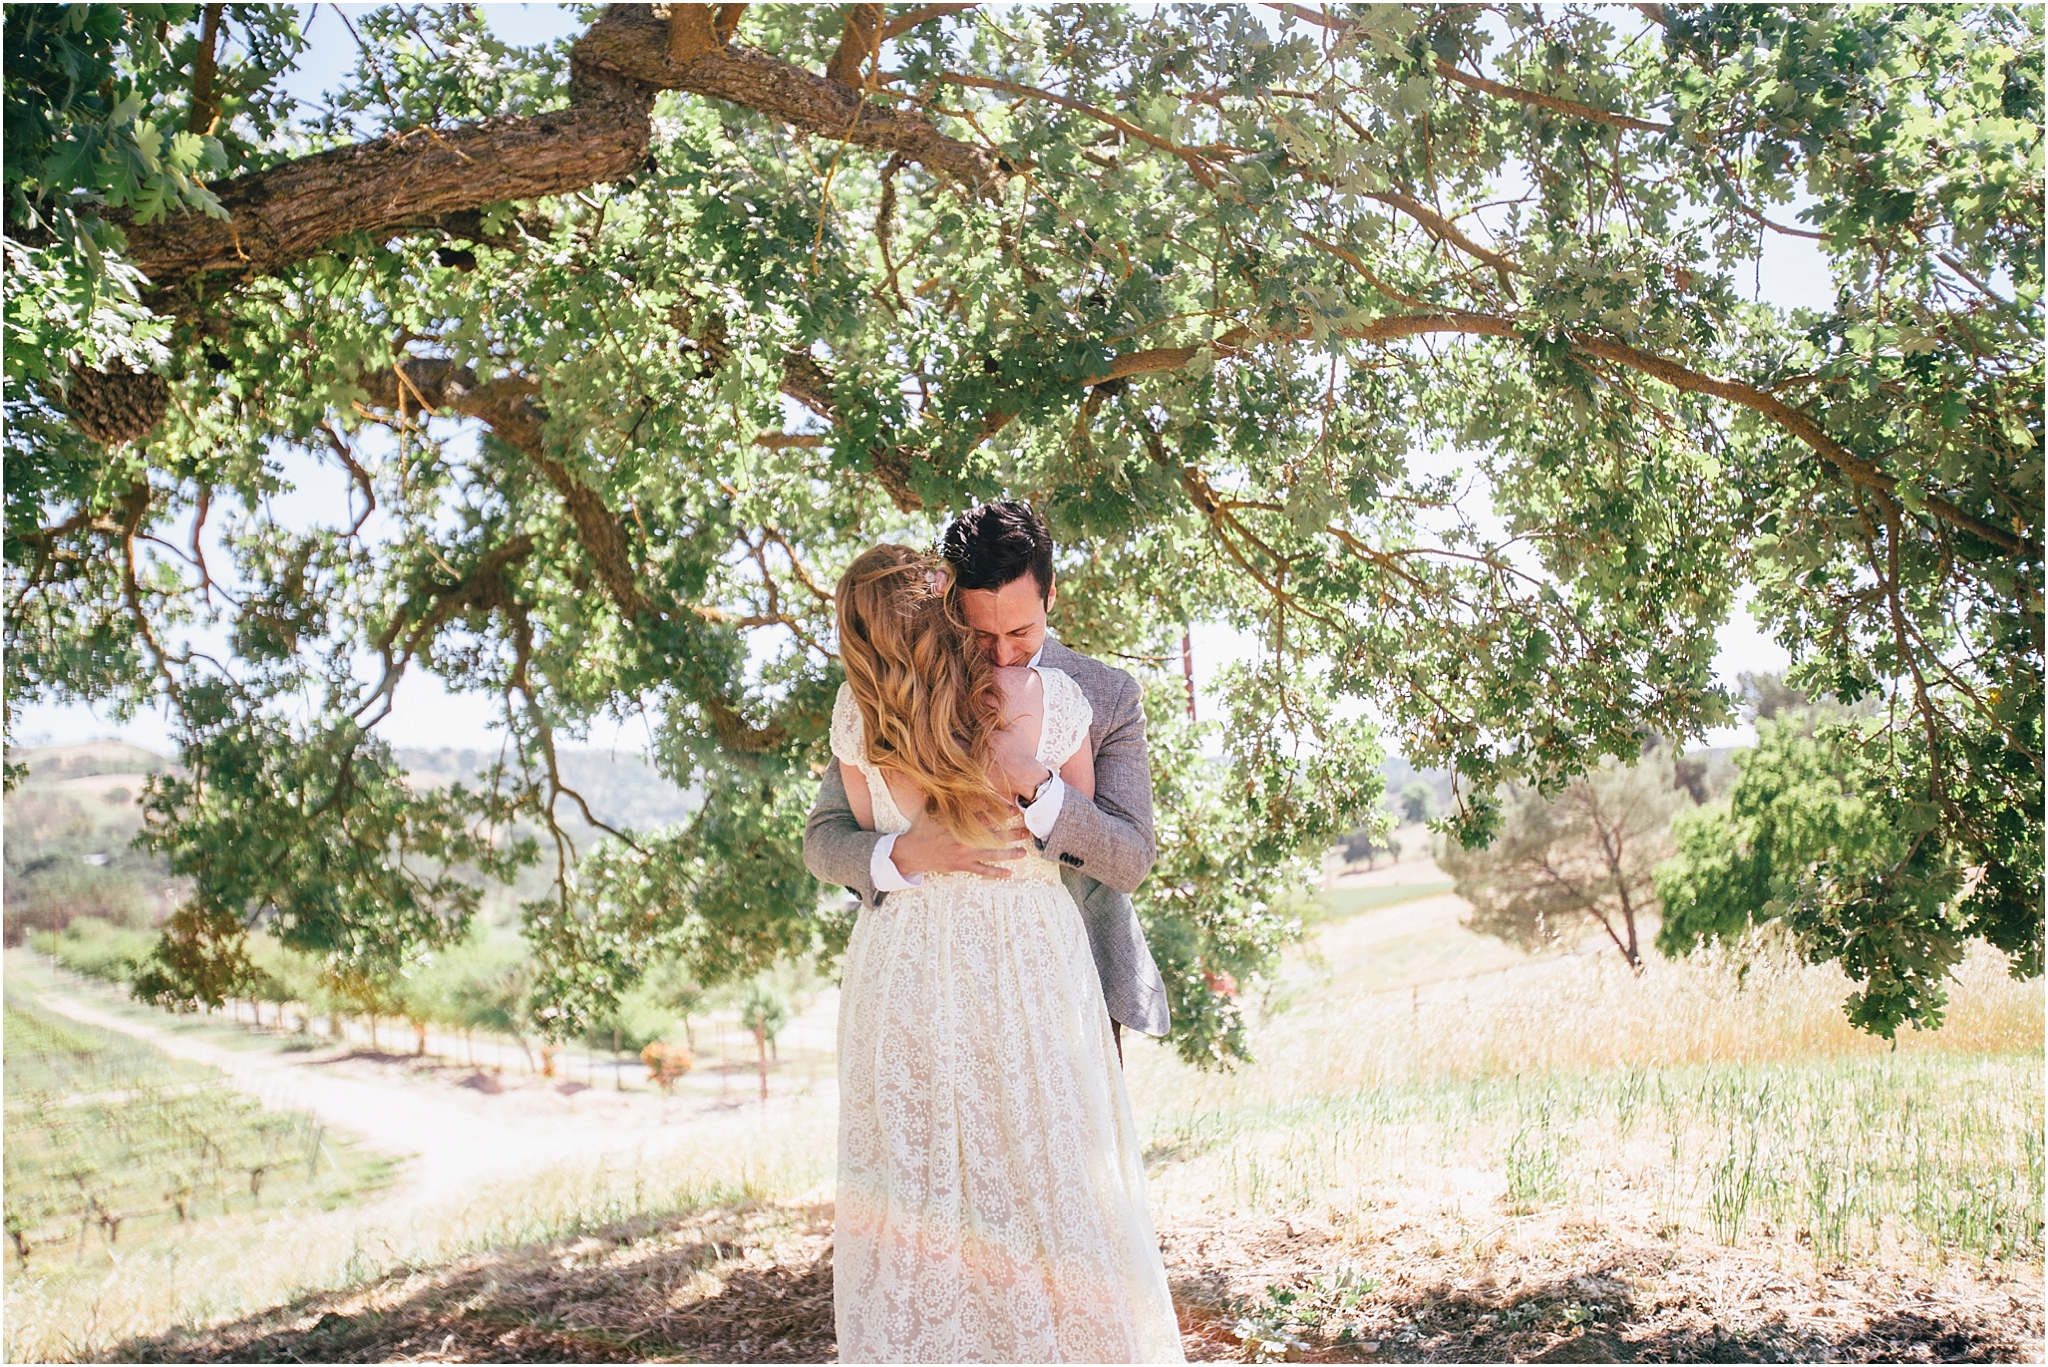 California Destination Wedding